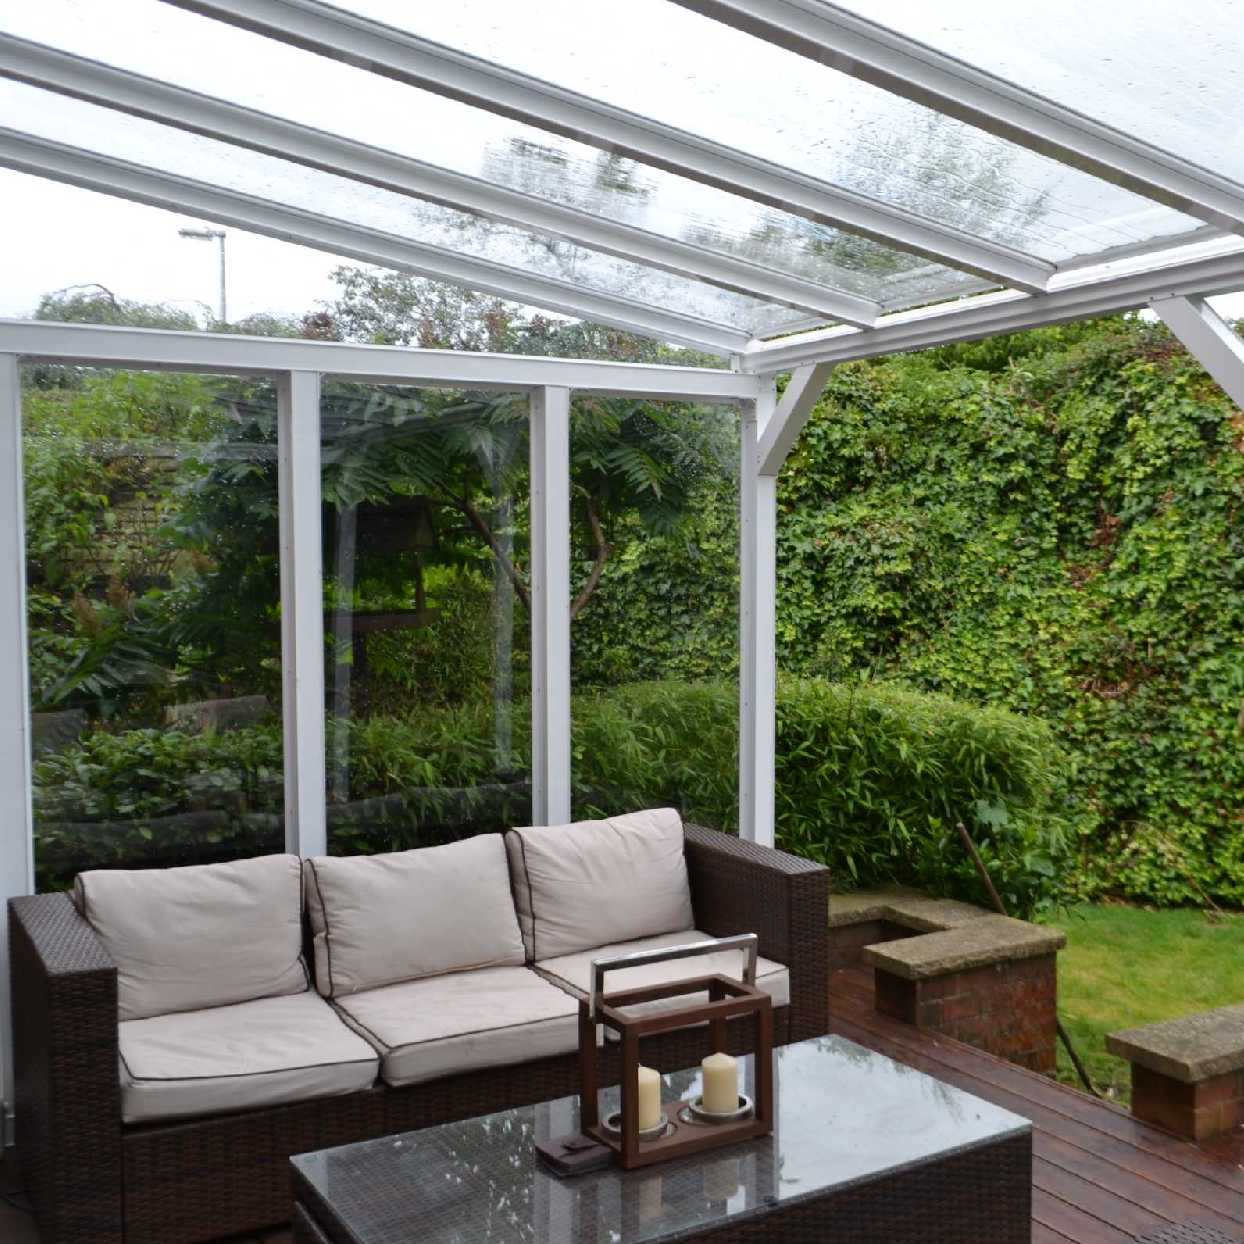 Omega Smart White Lean-To Canopy with 6mm Glass Clear Plate Polycarbonate Glazing - 2.1m (W) x 1.5m (P), (2) Supporting Posts